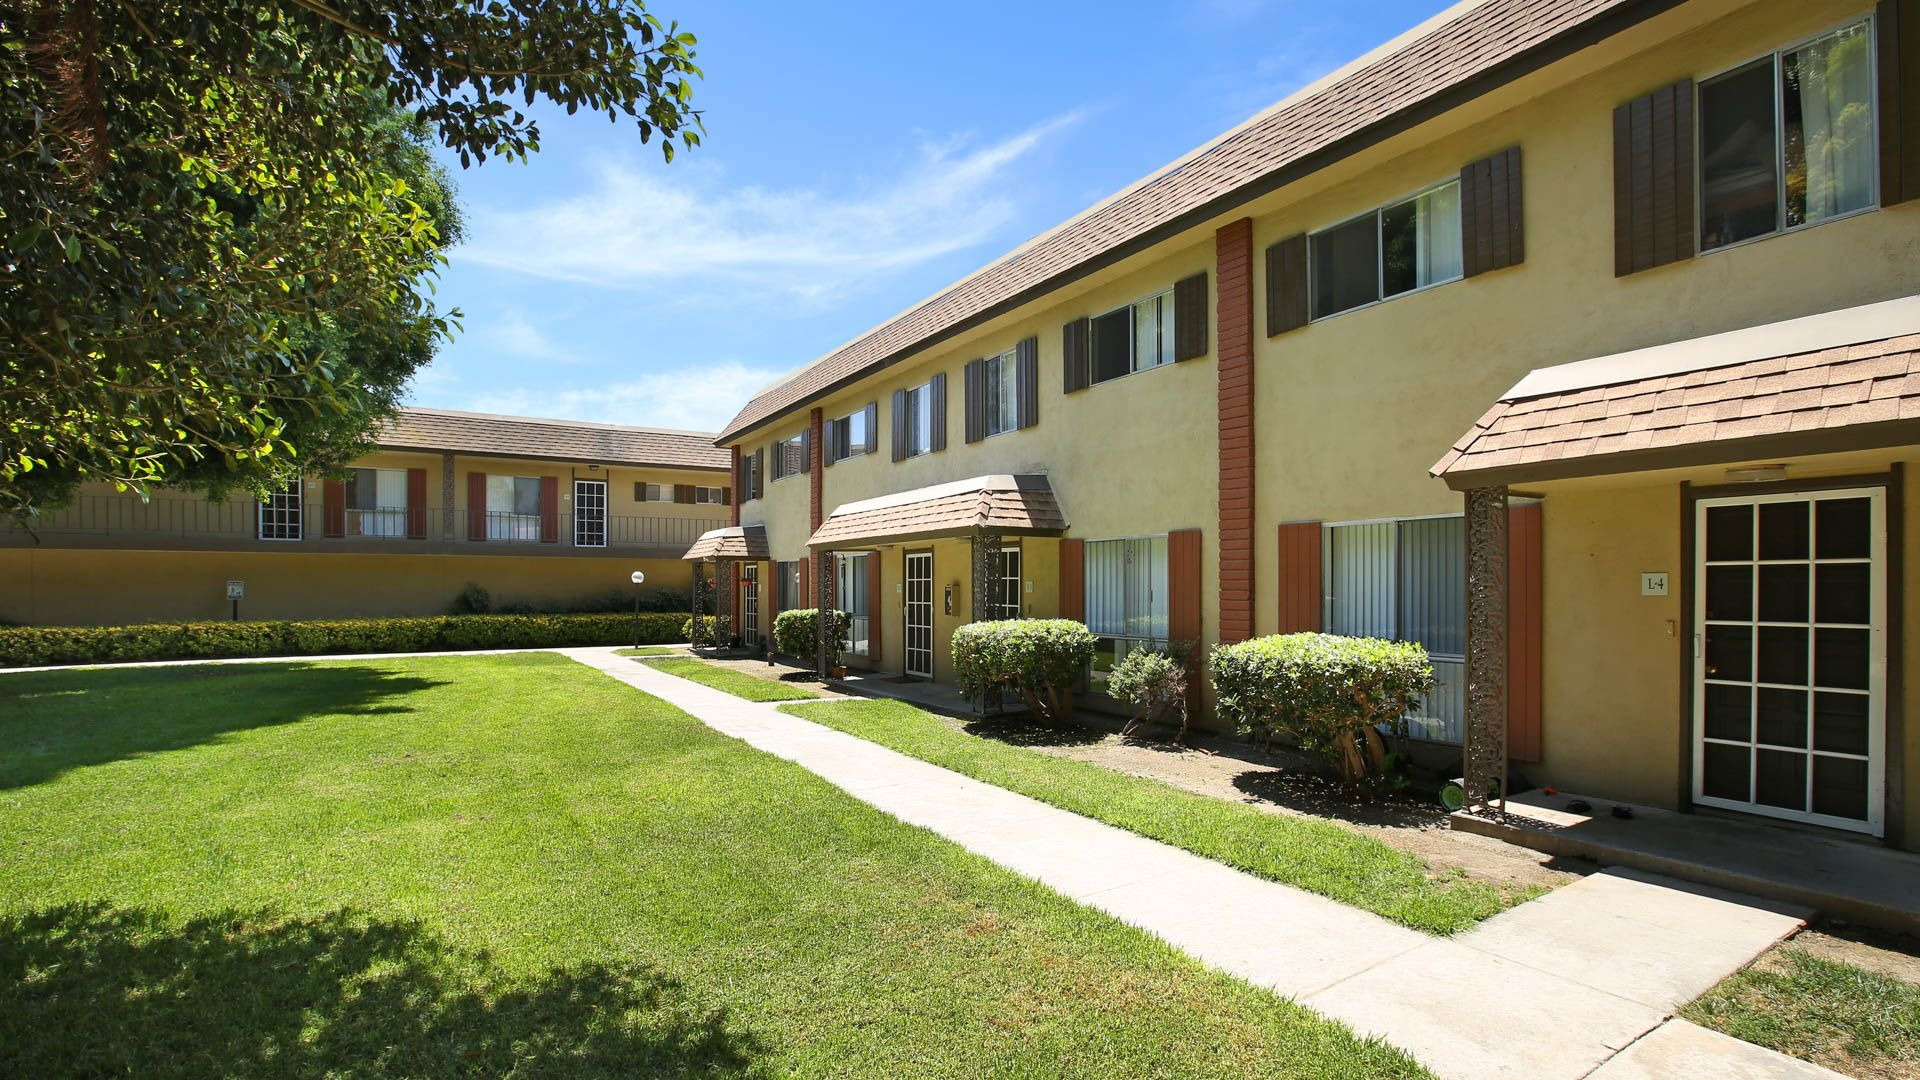 Regency Palms Apartments - Exterior